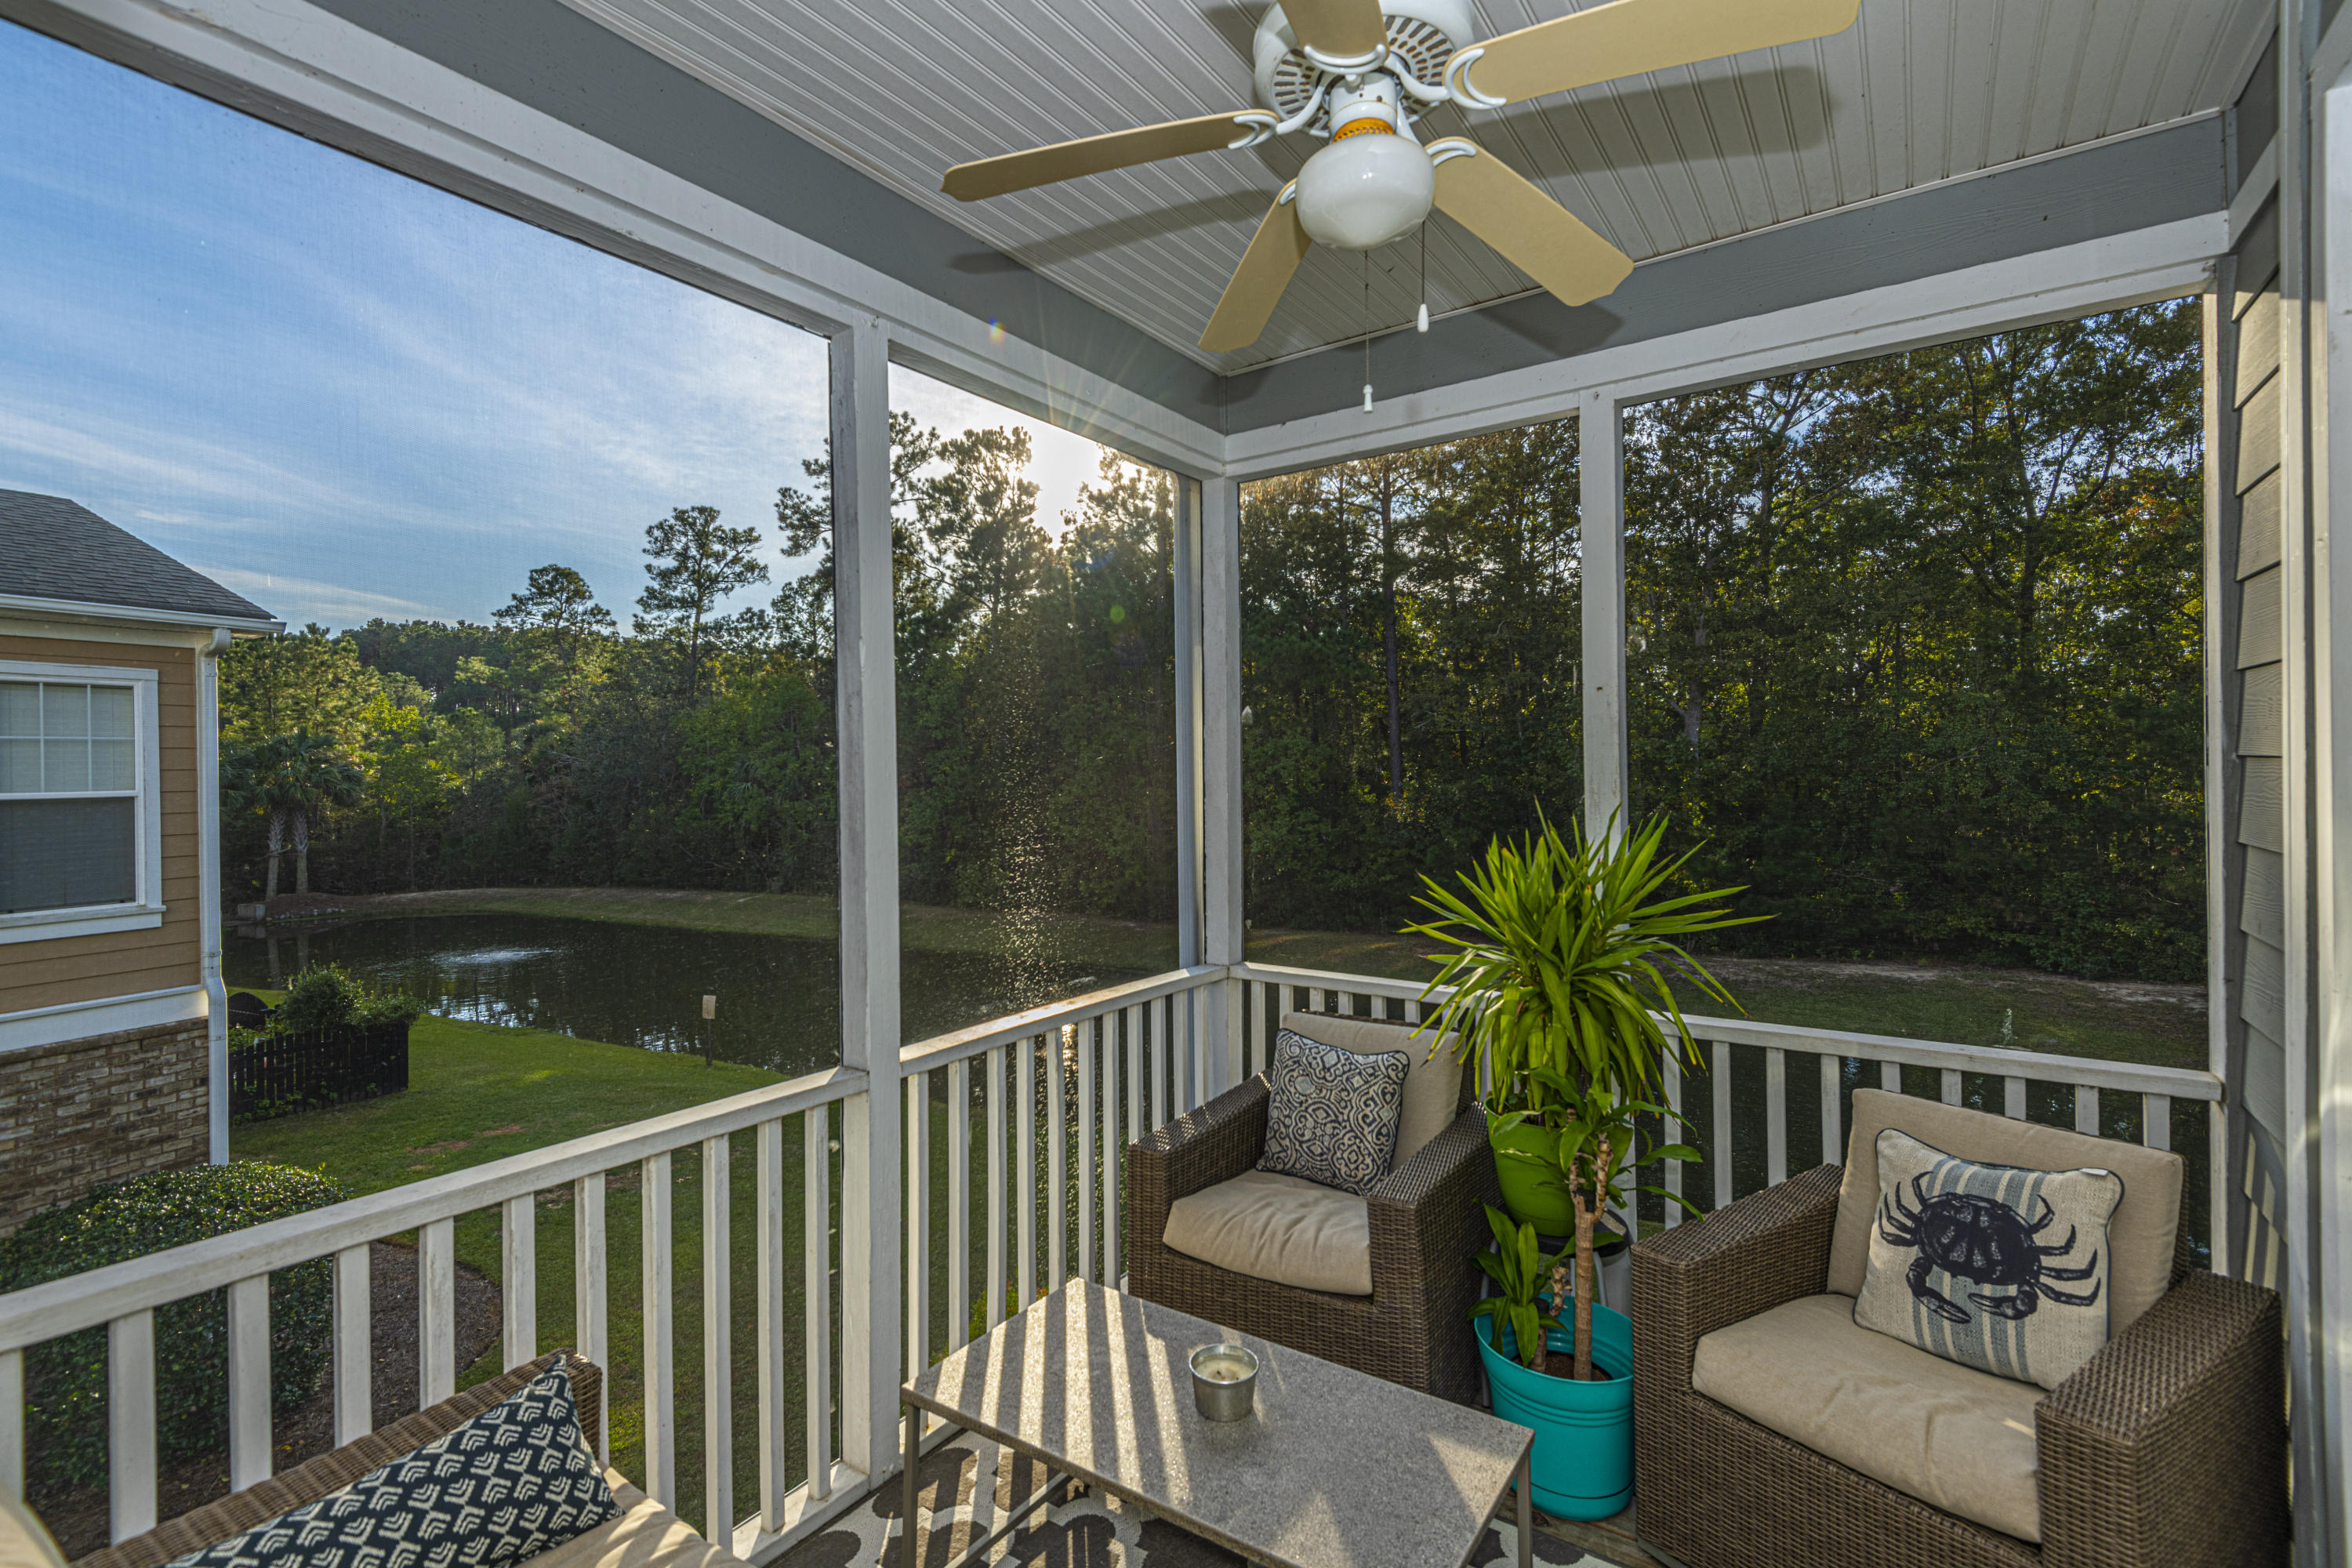 Dunes West Homes For Sale - 145 Palm Cove, Mount Pleasant, SC - 30